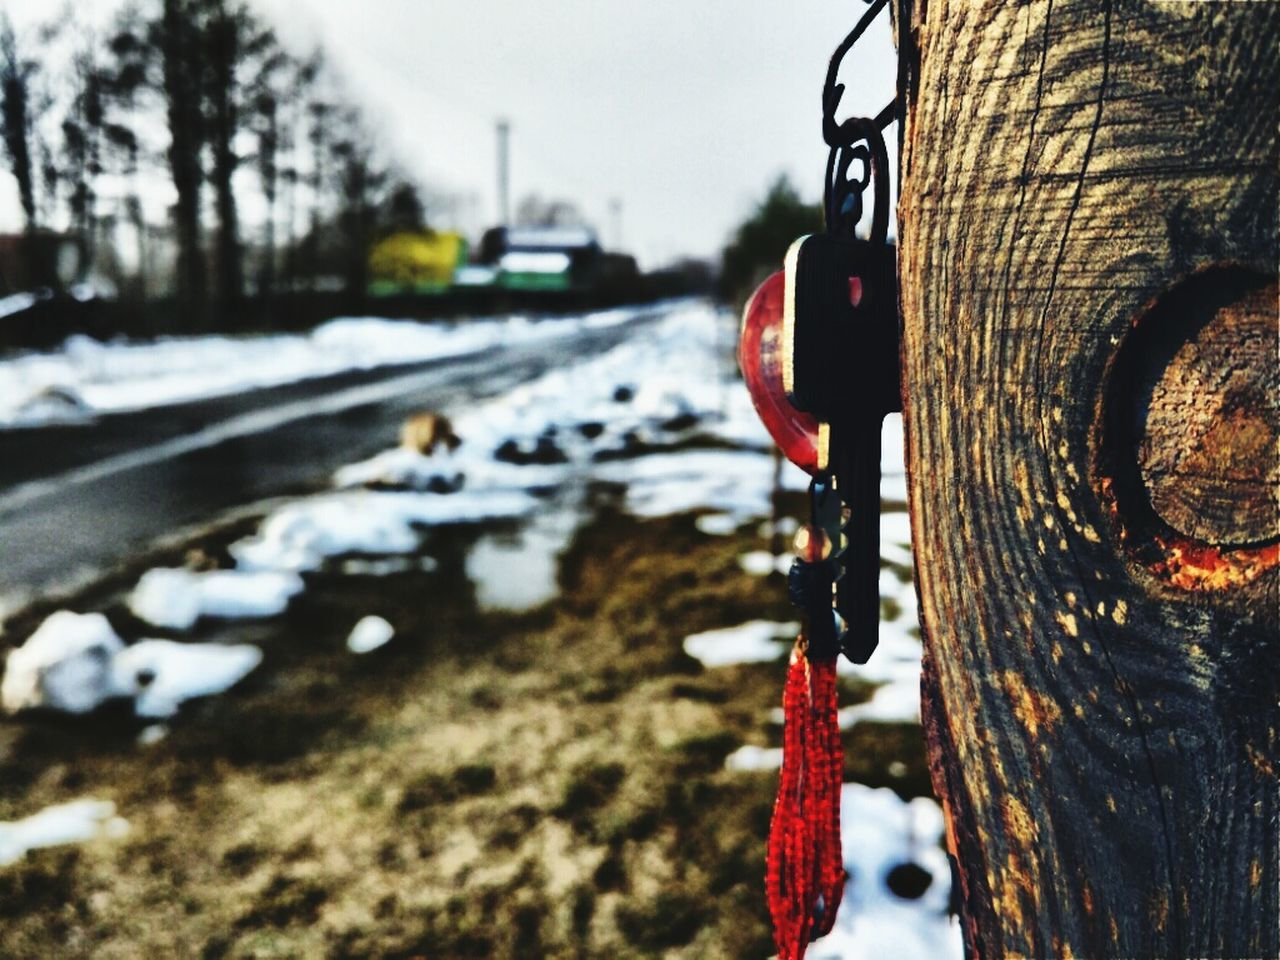 winter, snow, cold temperature, focus on foreground, close-up, mode of transport, outdoors, transportation, day, no people, car, land vehicle, red, hanging, nature, water, sky